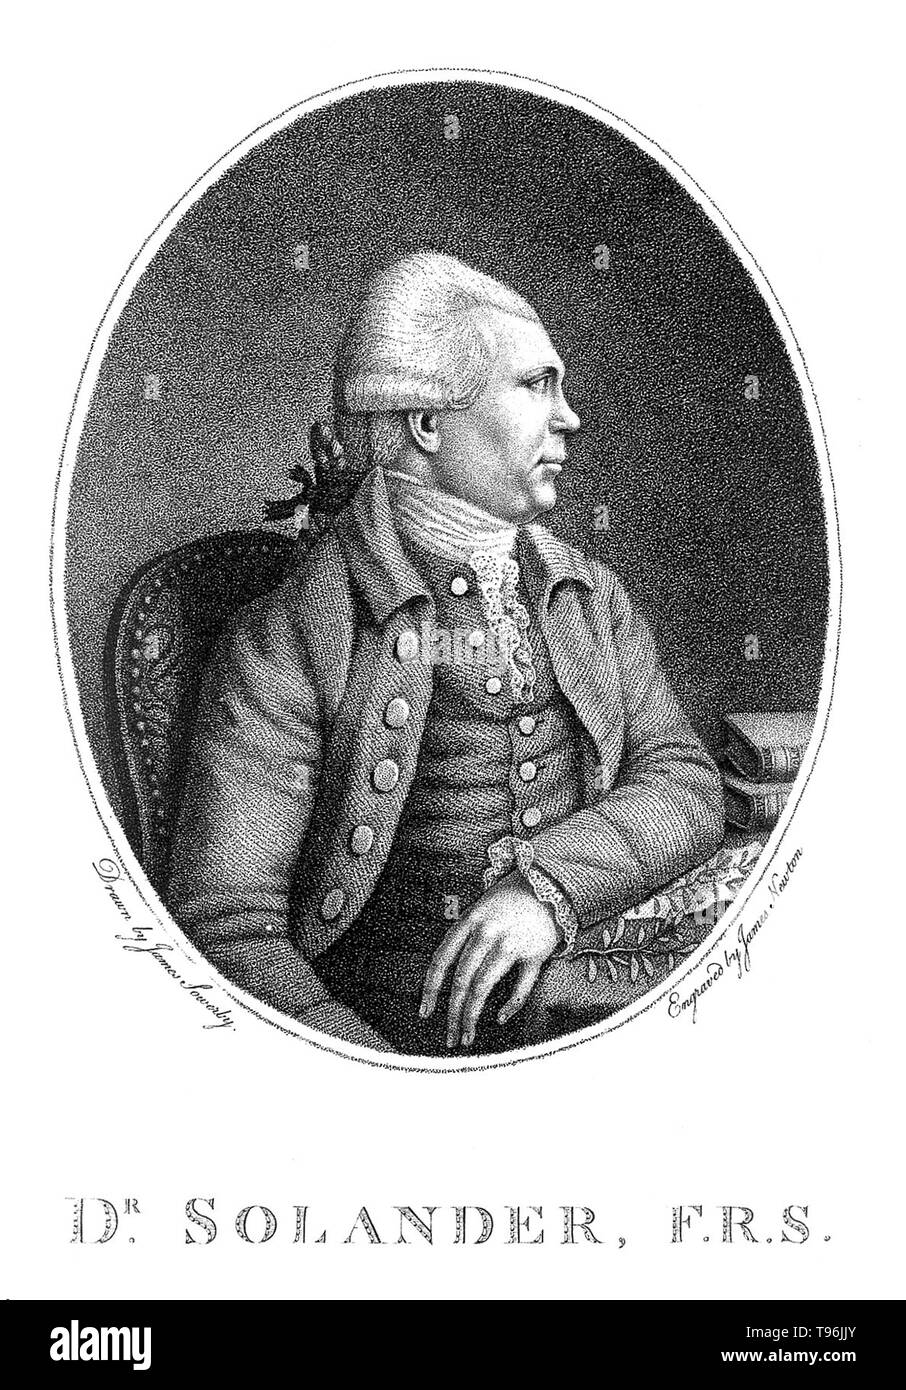 Daniel Carlsson Solander (February 19, 1733 - May 13, 1782) was a Swedish naturalist. In 1768, Solander gained leave of absence from the British Museum and accompanied Joseph Banks on James Cook's first voyage to the Pacific Ocean aboard the Endeavour. In 1772 he accompanied Banks on his voyage to Iceland, the Hebrides and the Orkney Islands. Between 1773 and 1782 he was Keeper of the Natural History Department of the British Museum. He died of a stroke at the age of 49. Stock Photo